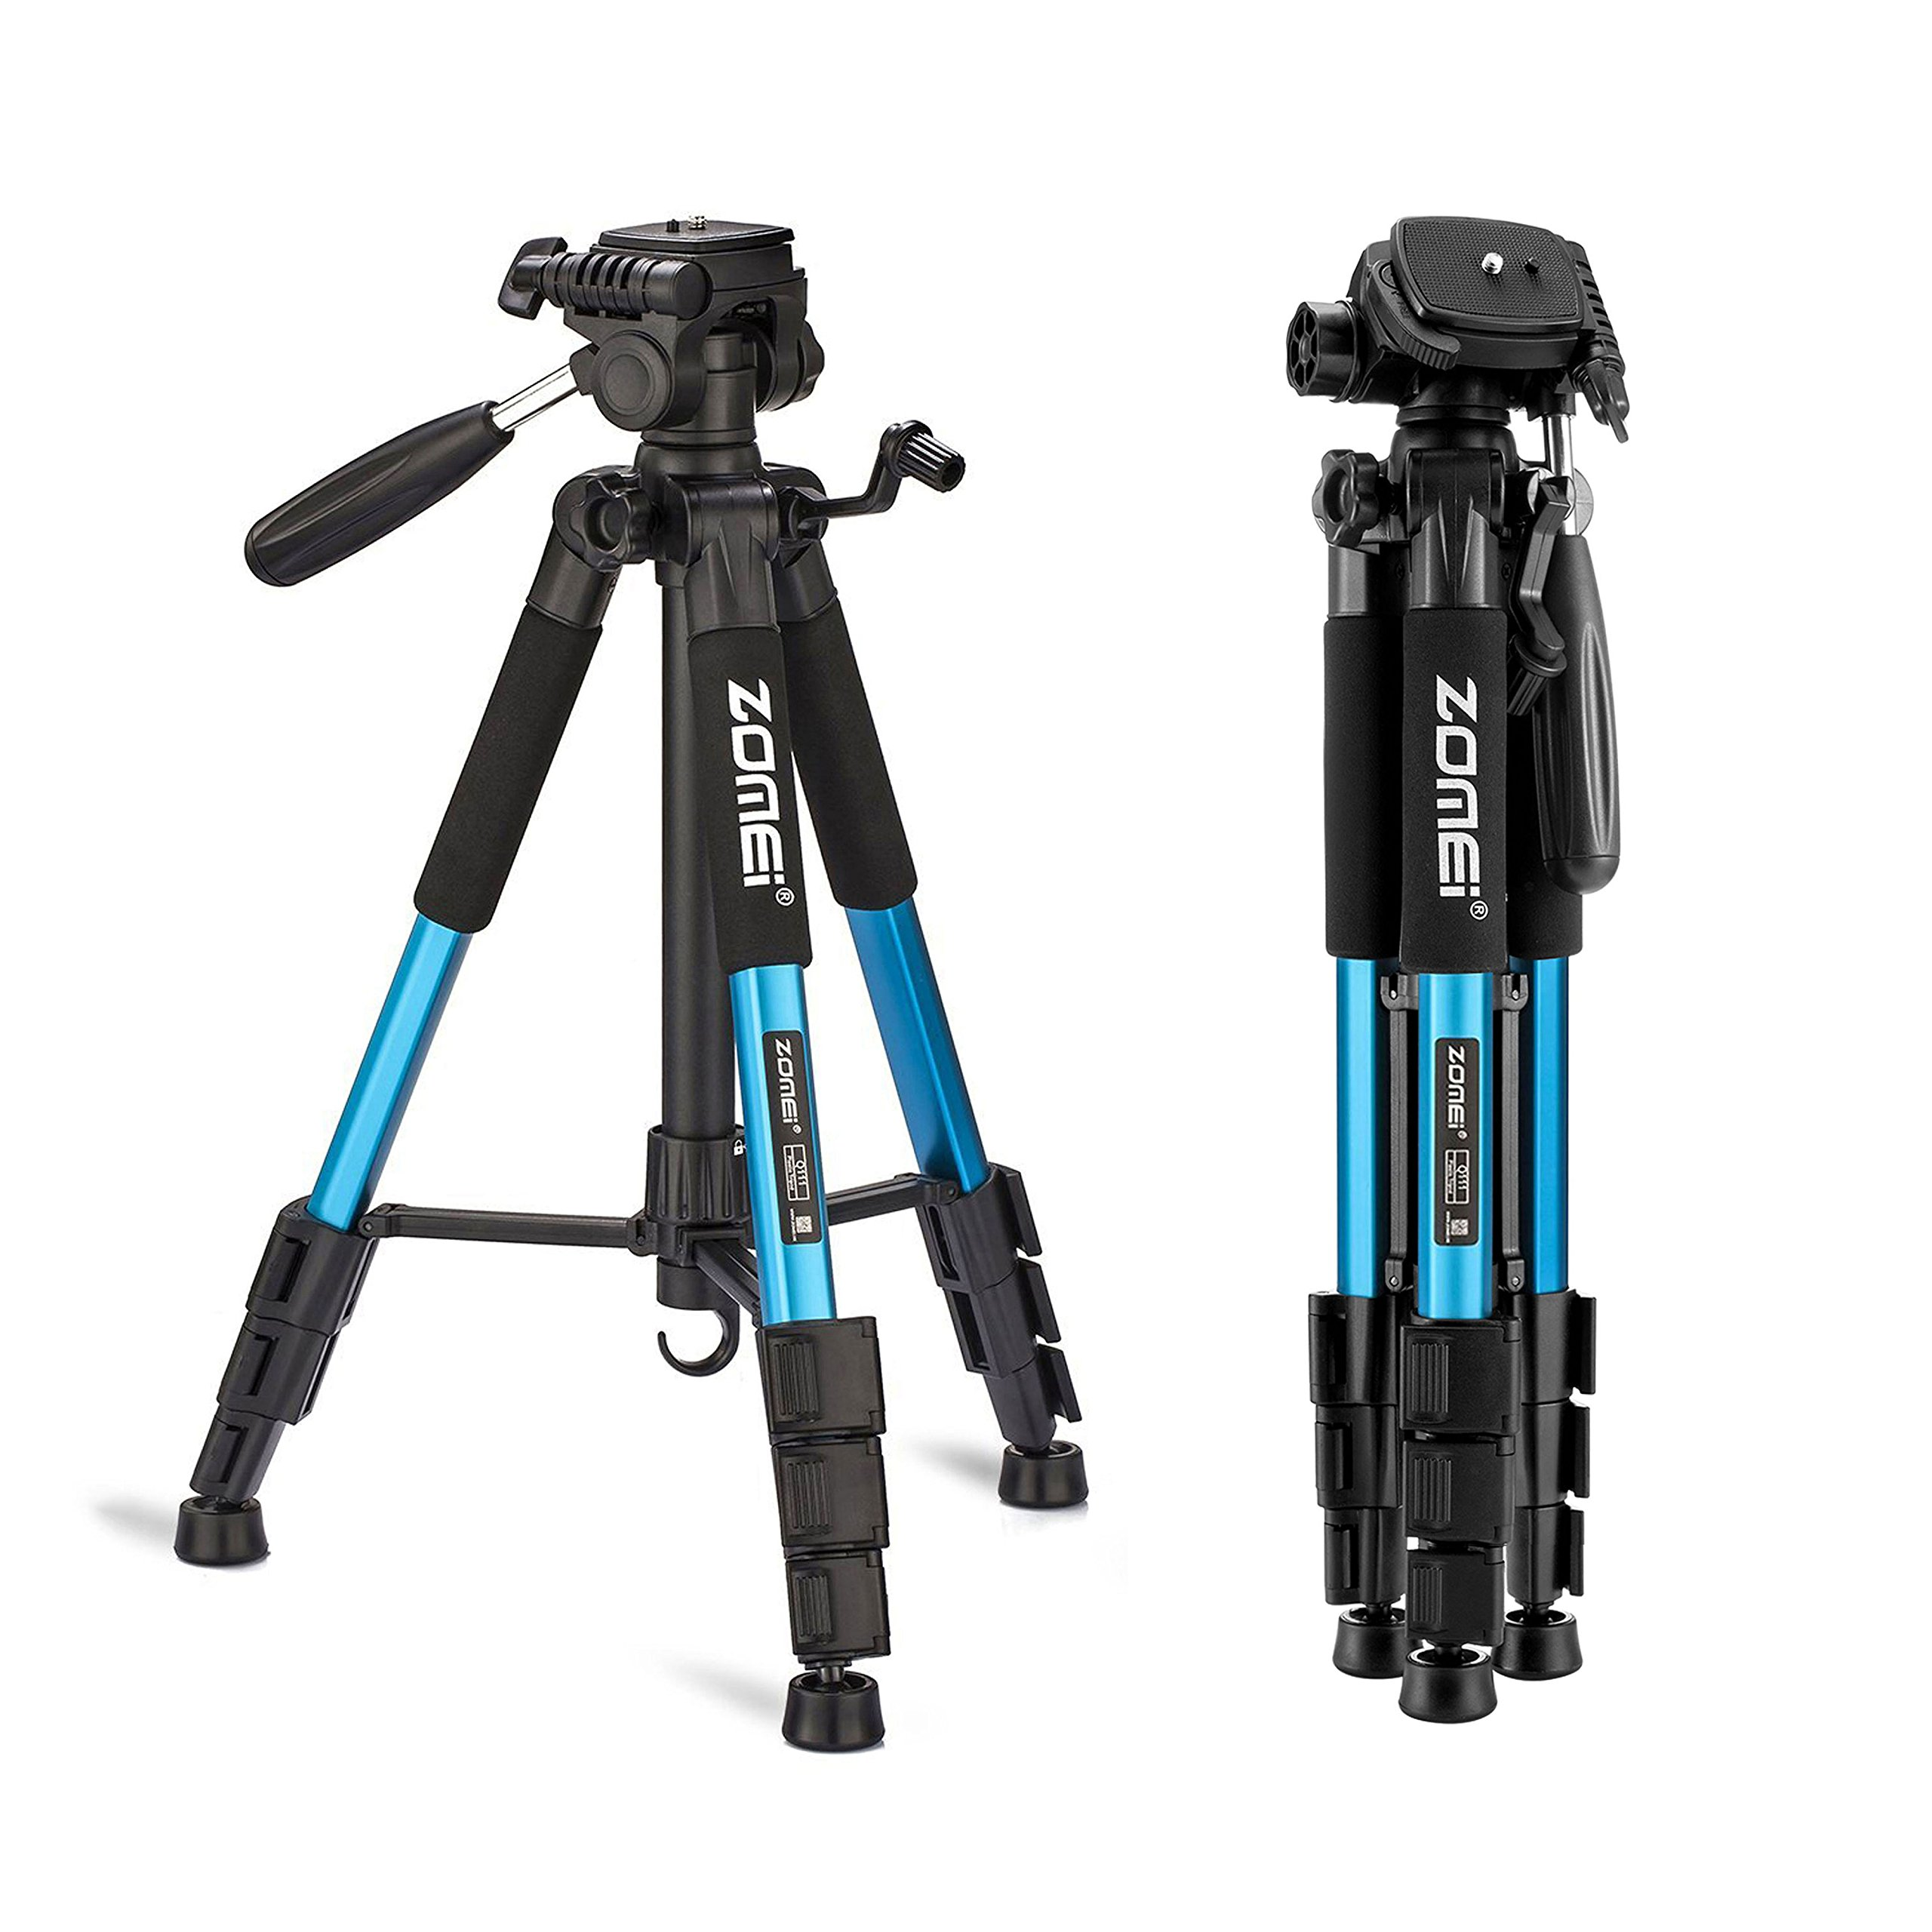 ZOMEI 55'' Compact Light Weight Travel Portable Folding SLR Camera Tripod for Canon Nikon Sony DSLR Camera Video with Carry Case(Blue) by ZoMei